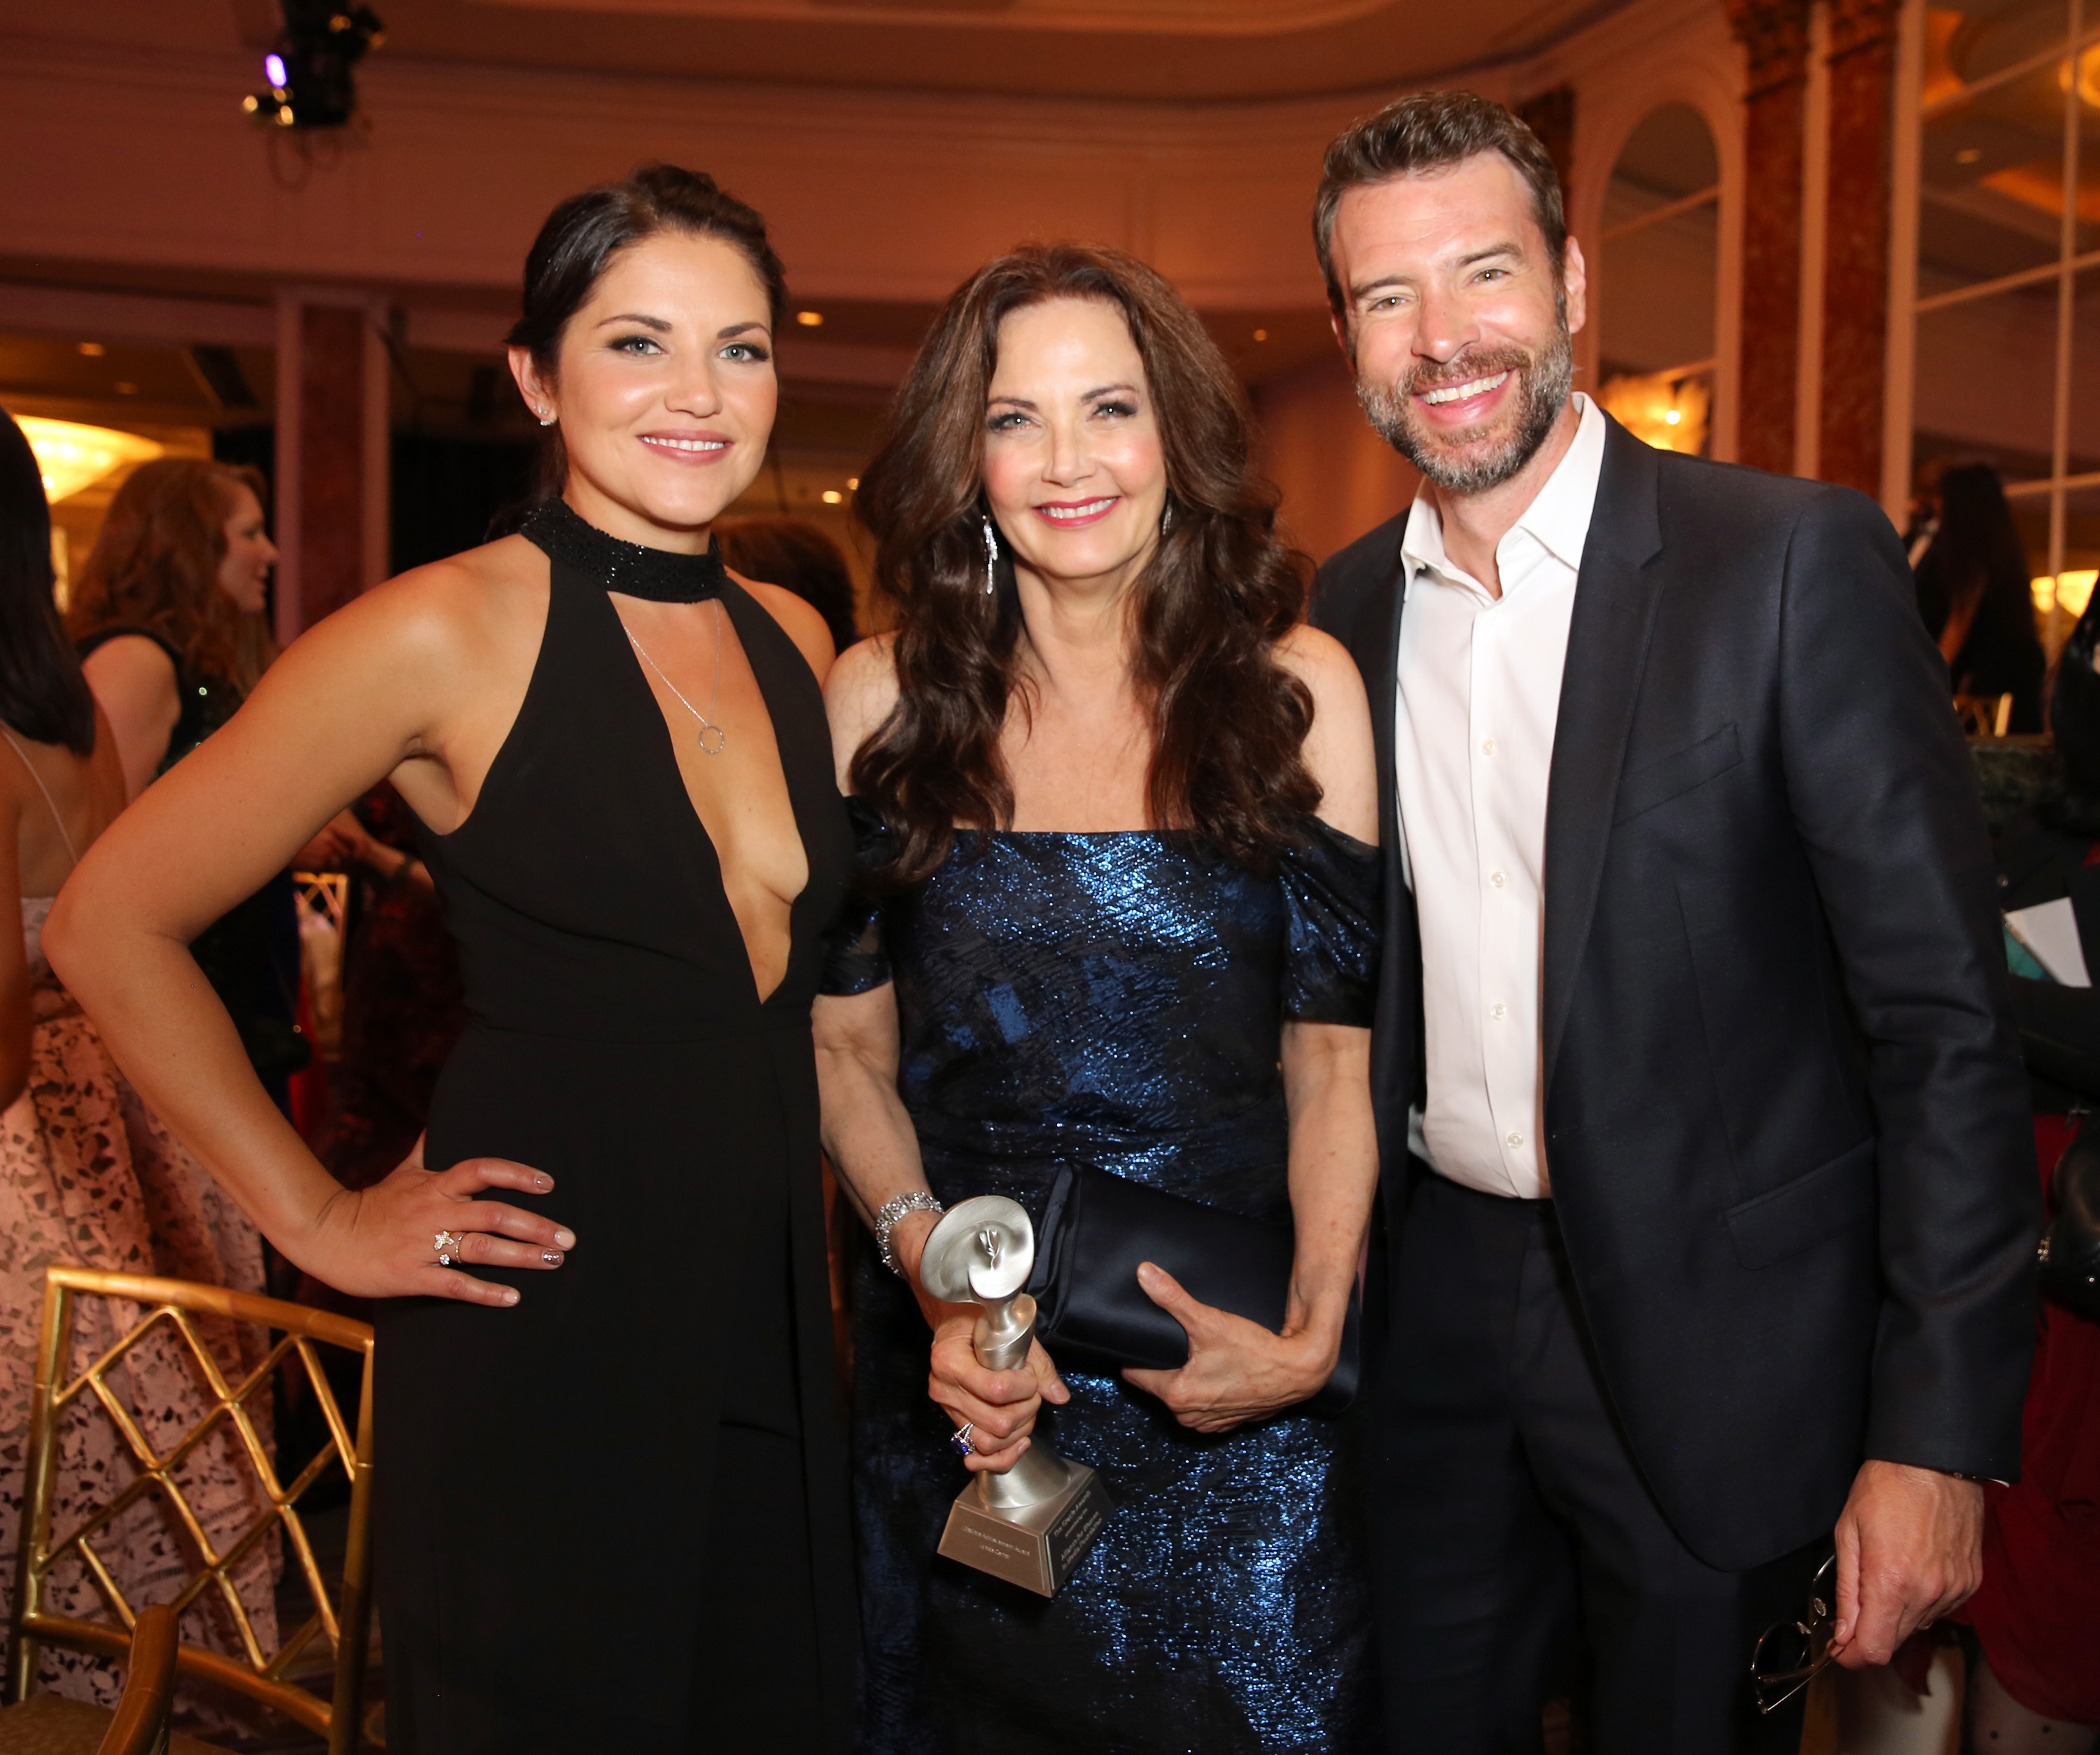 """""""BEVERLY HILLS, CA - MAY 24: (L-R) Actress Marika Dominczyk, Honoree Lynda Carter, with Lifetime Achievement Award, and actor Scott Foley attend the 41st Annual Gracie Awards at Regent Beverly Wilshire Hotel on May 24, 2016 in Beverly Hills, California.  (Photo by Rachel Murray/Getty Images for Alliance for Women in Media )"""""""